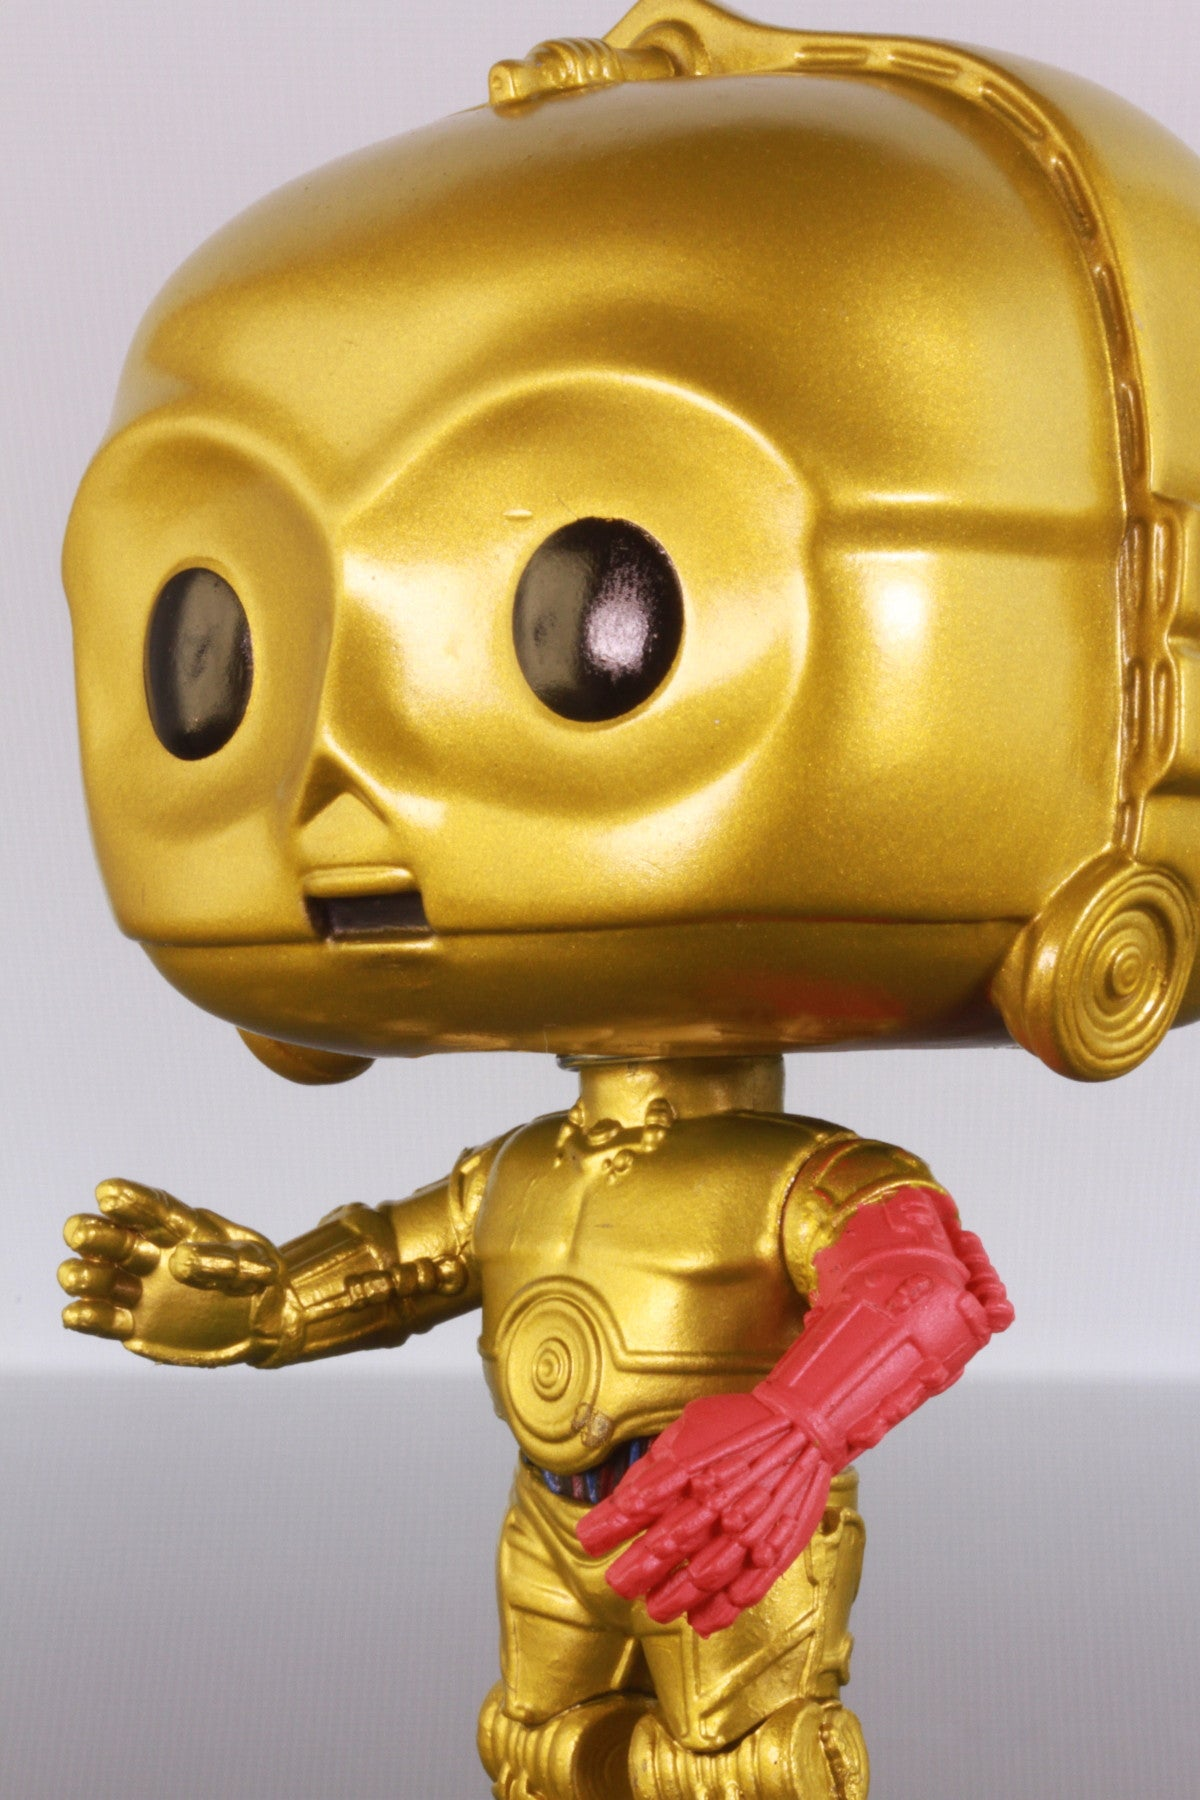 funko pop star wars c 3po 64 u2013 sausalito ferry co